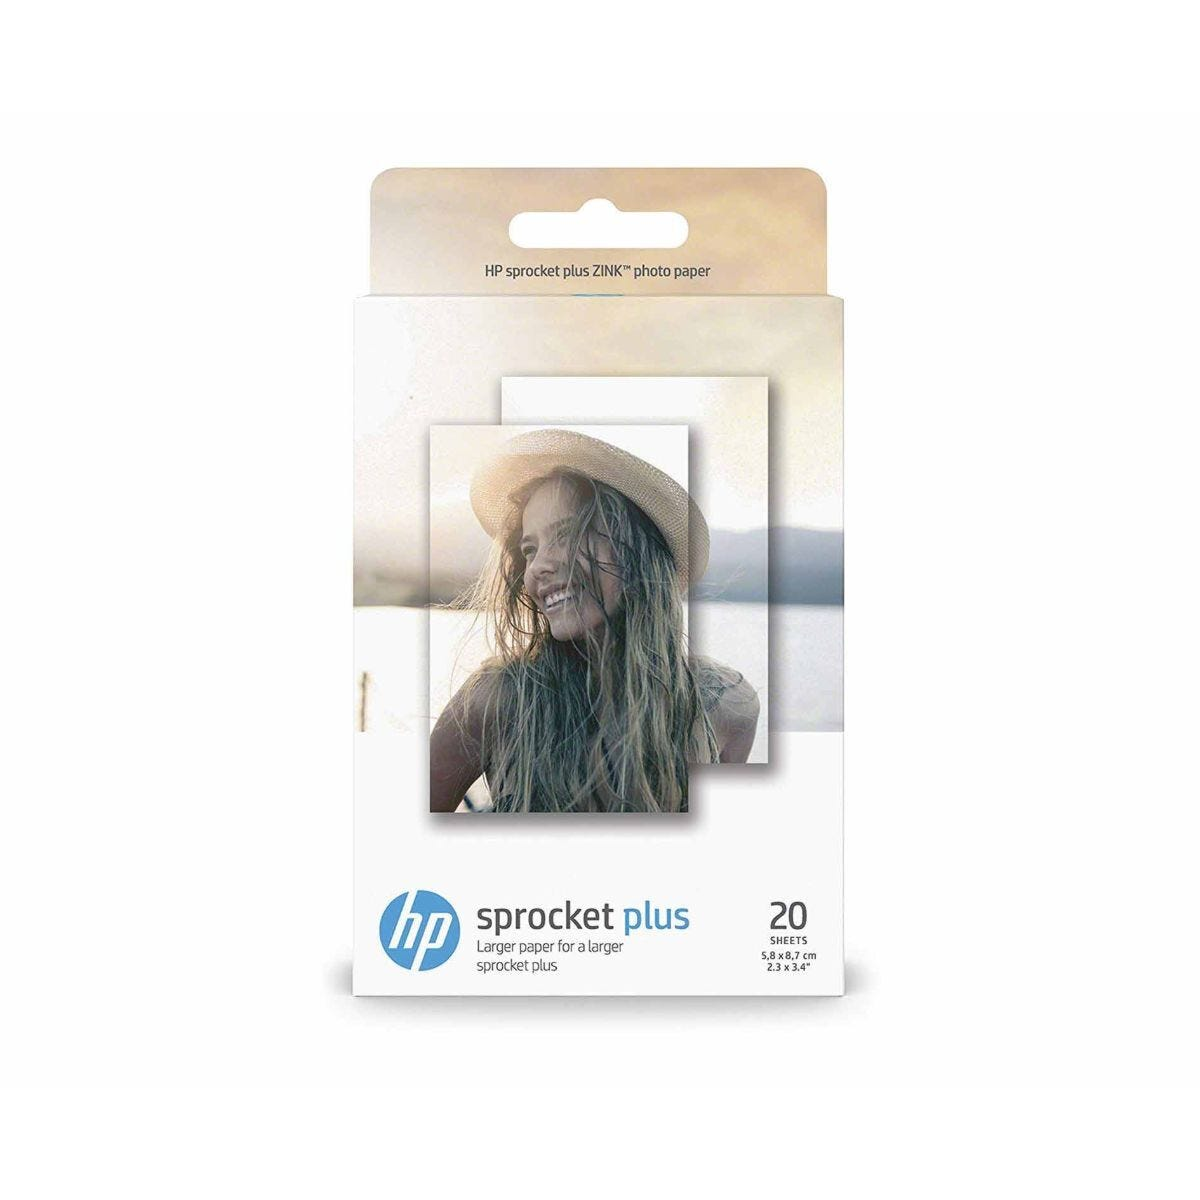 HP Sprocket Plus Photo Paper 2.3x3.4 Pack of 20